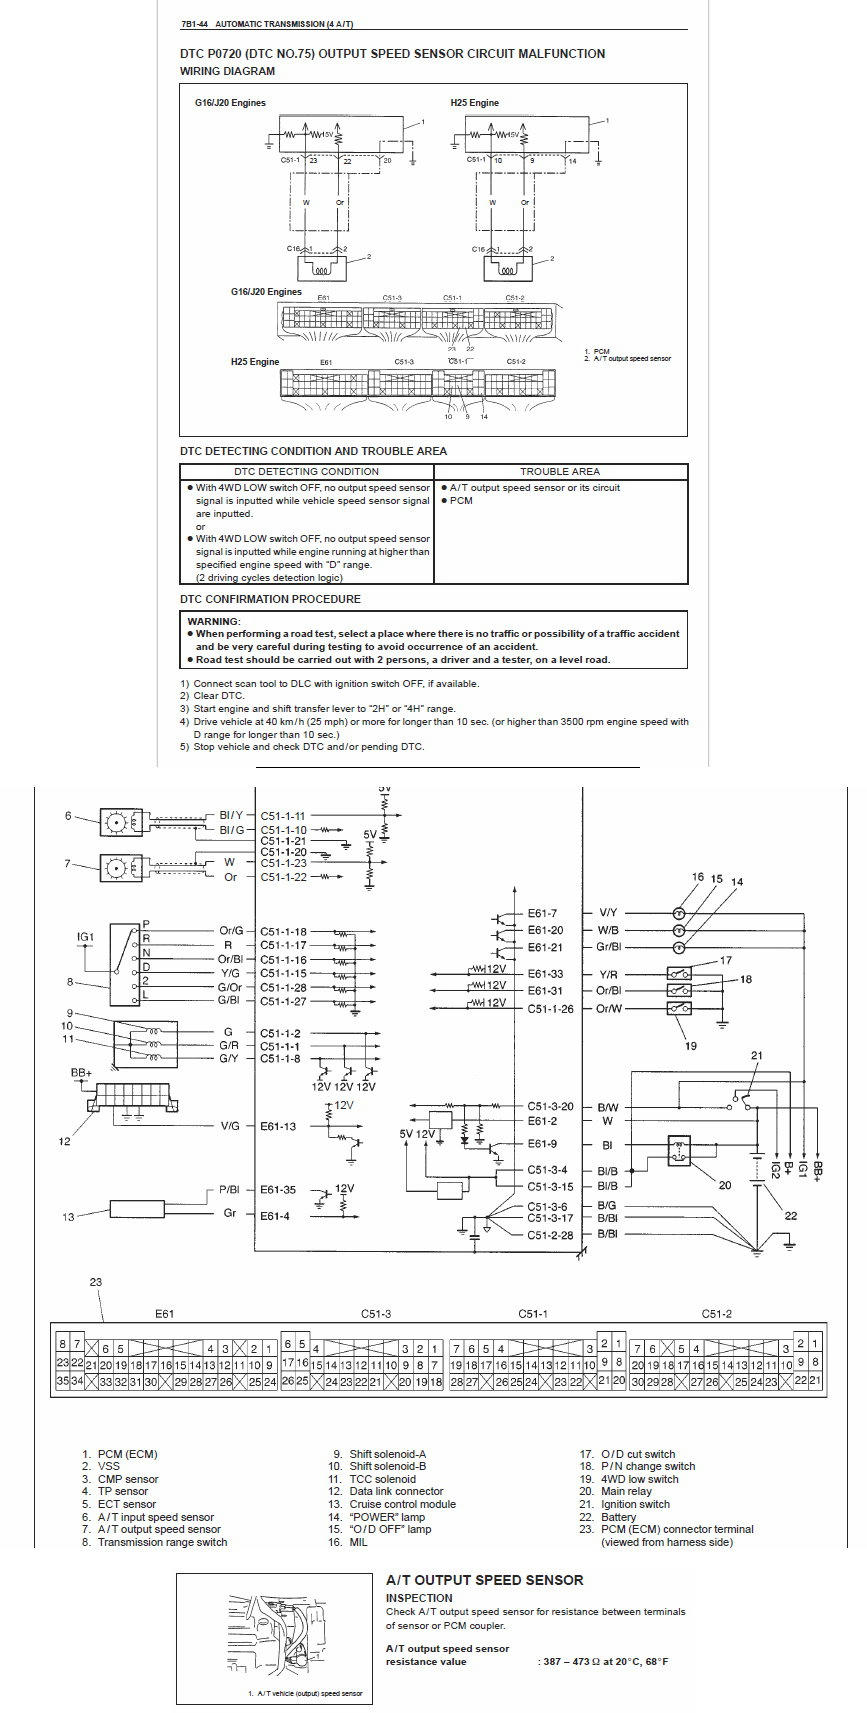 Suzuki Ignis Sport Wiring Diagram - Wiring Diagram And Schematics